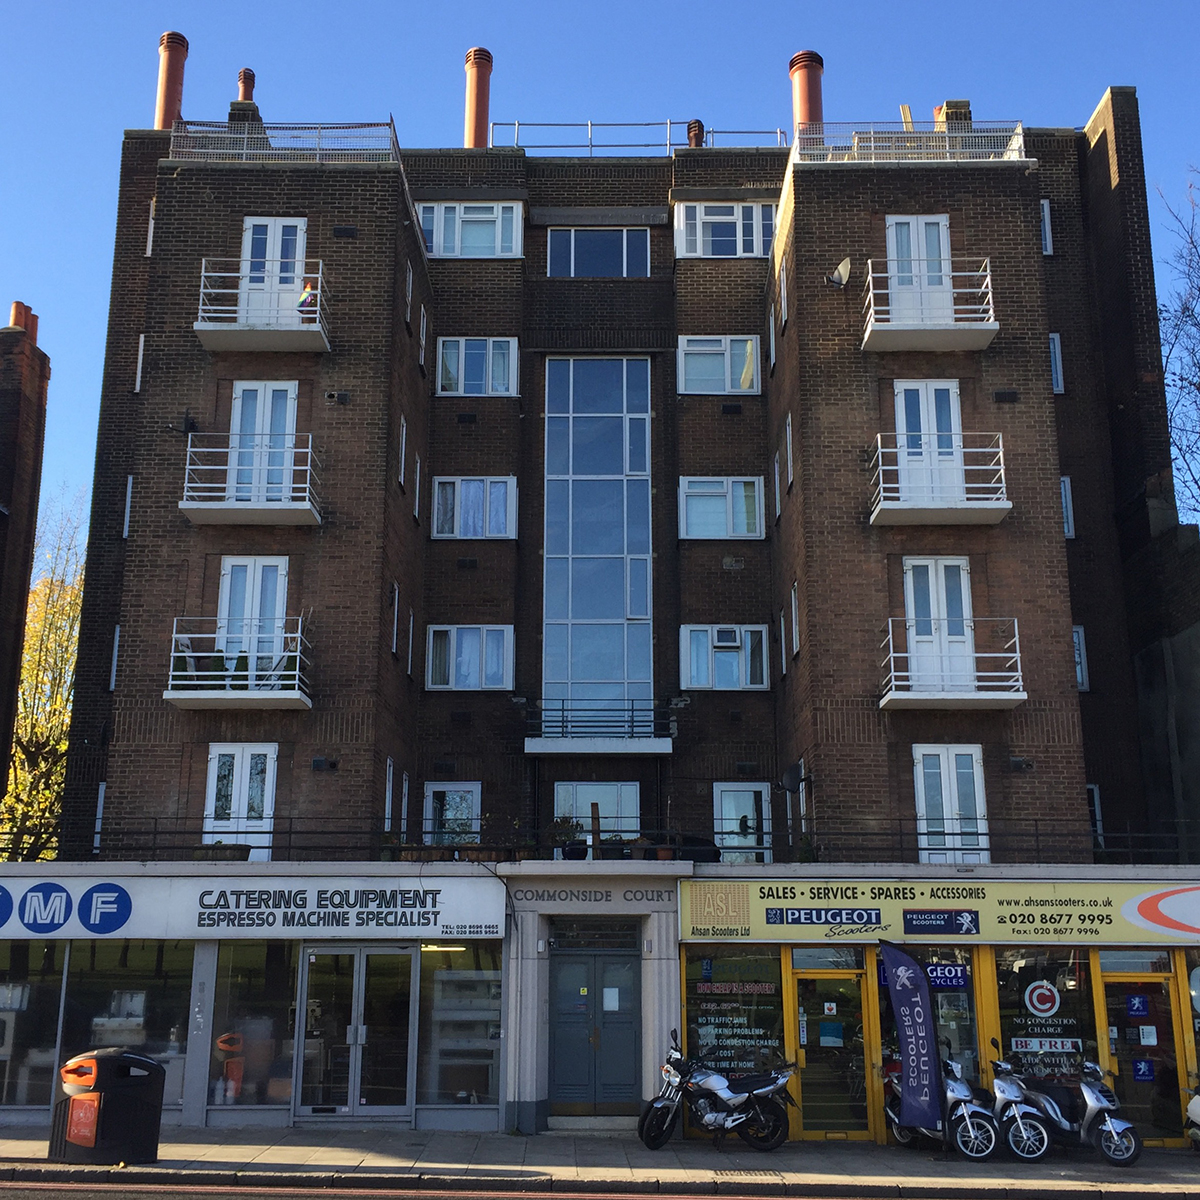 Commonside Court, Streatham High Road, SW16